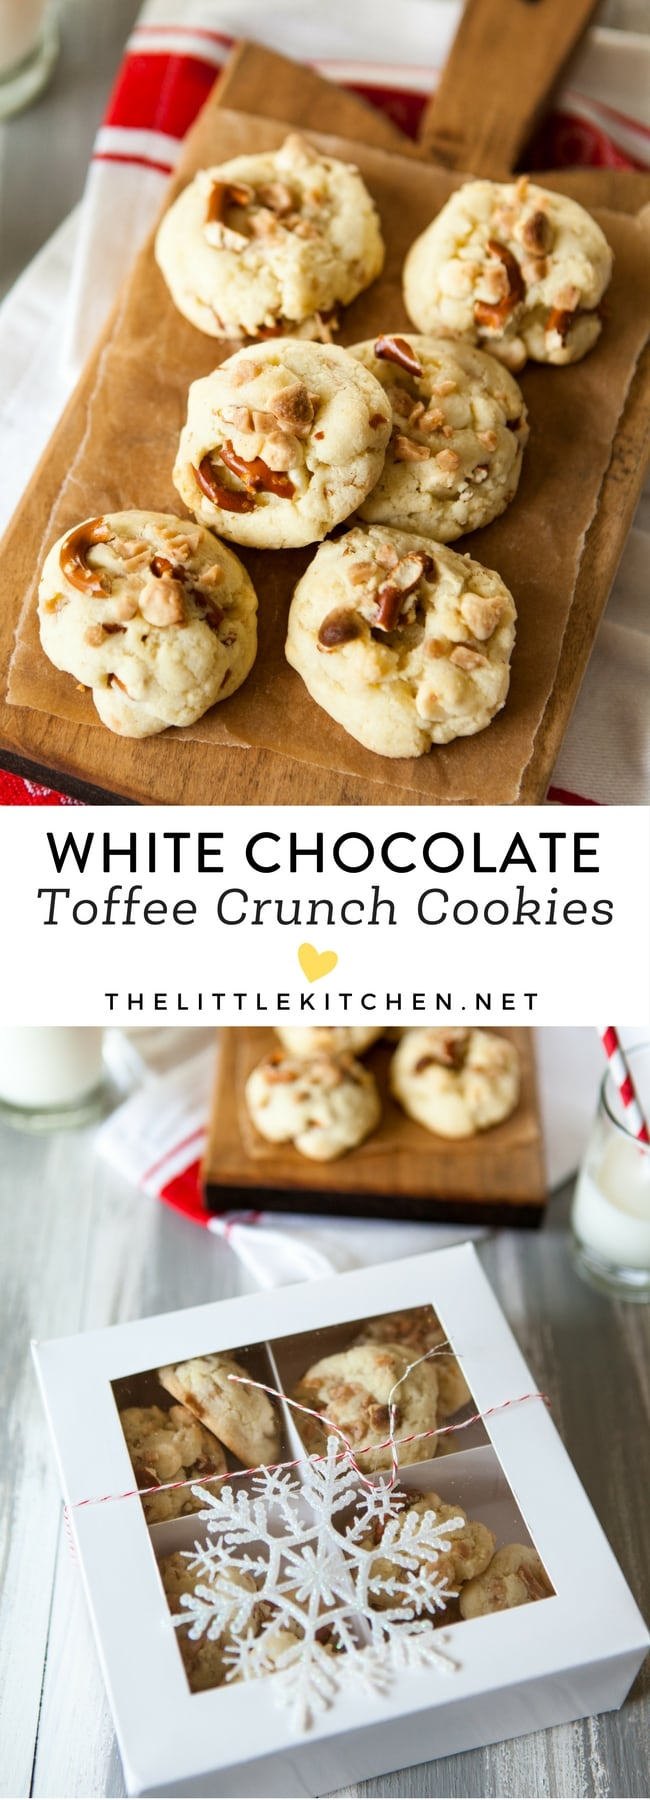 White Chocolate Toffee Crunch Cookies from thelittlekitchen.net